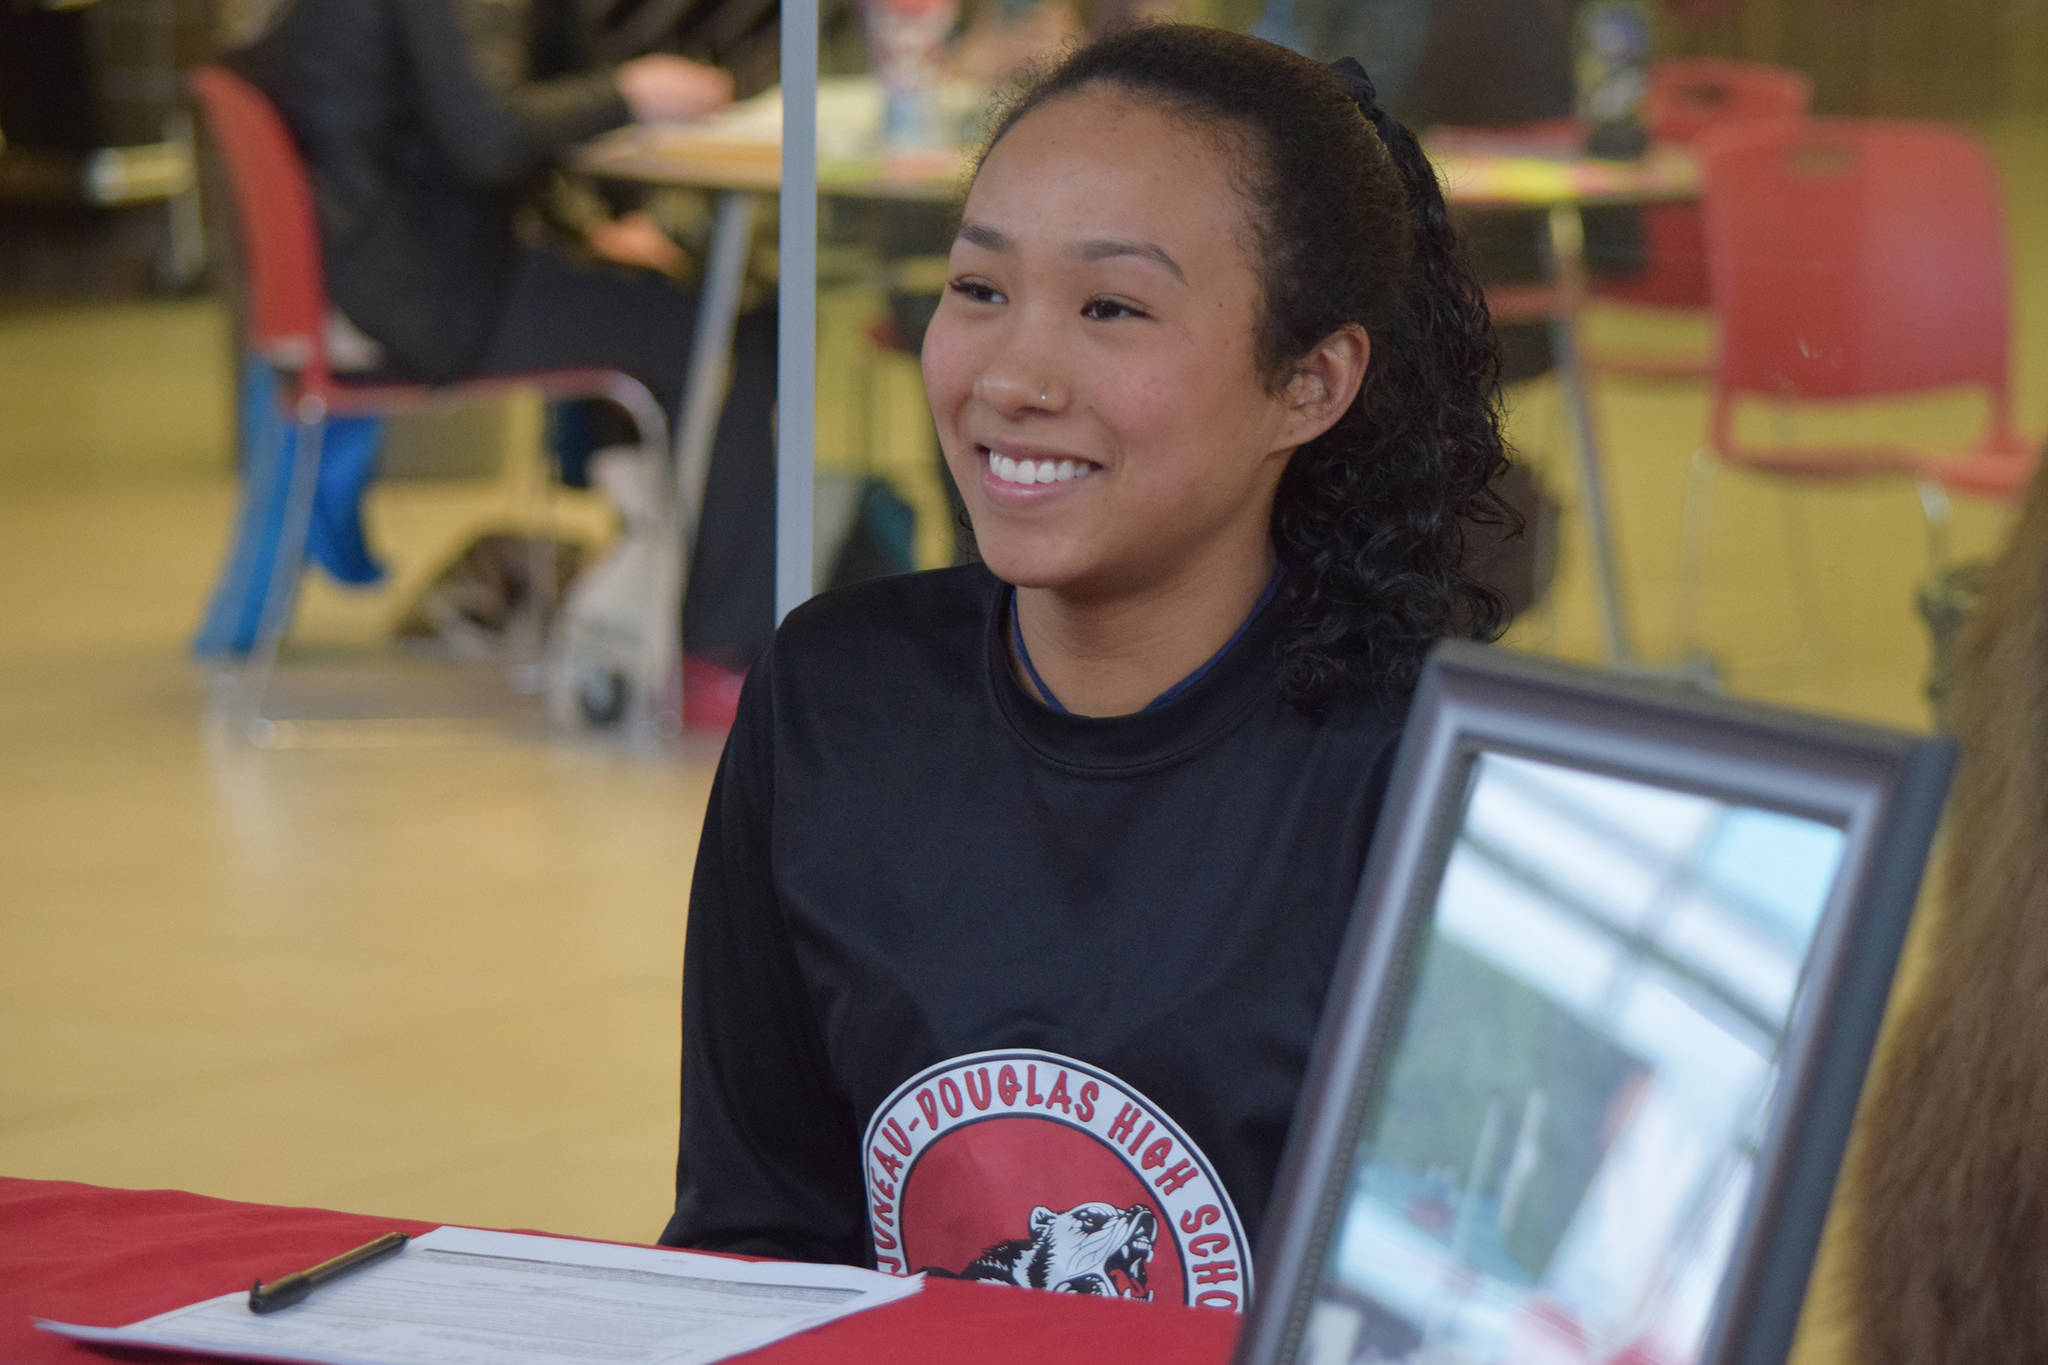 Juneau-Douglas High School senior Malia Miller finishes signing a National Letter of Intent with Bellevue College at the JDHS commons on Thursday, March 14, 2019. (Nolin Ainsworth | Juneau Empire)